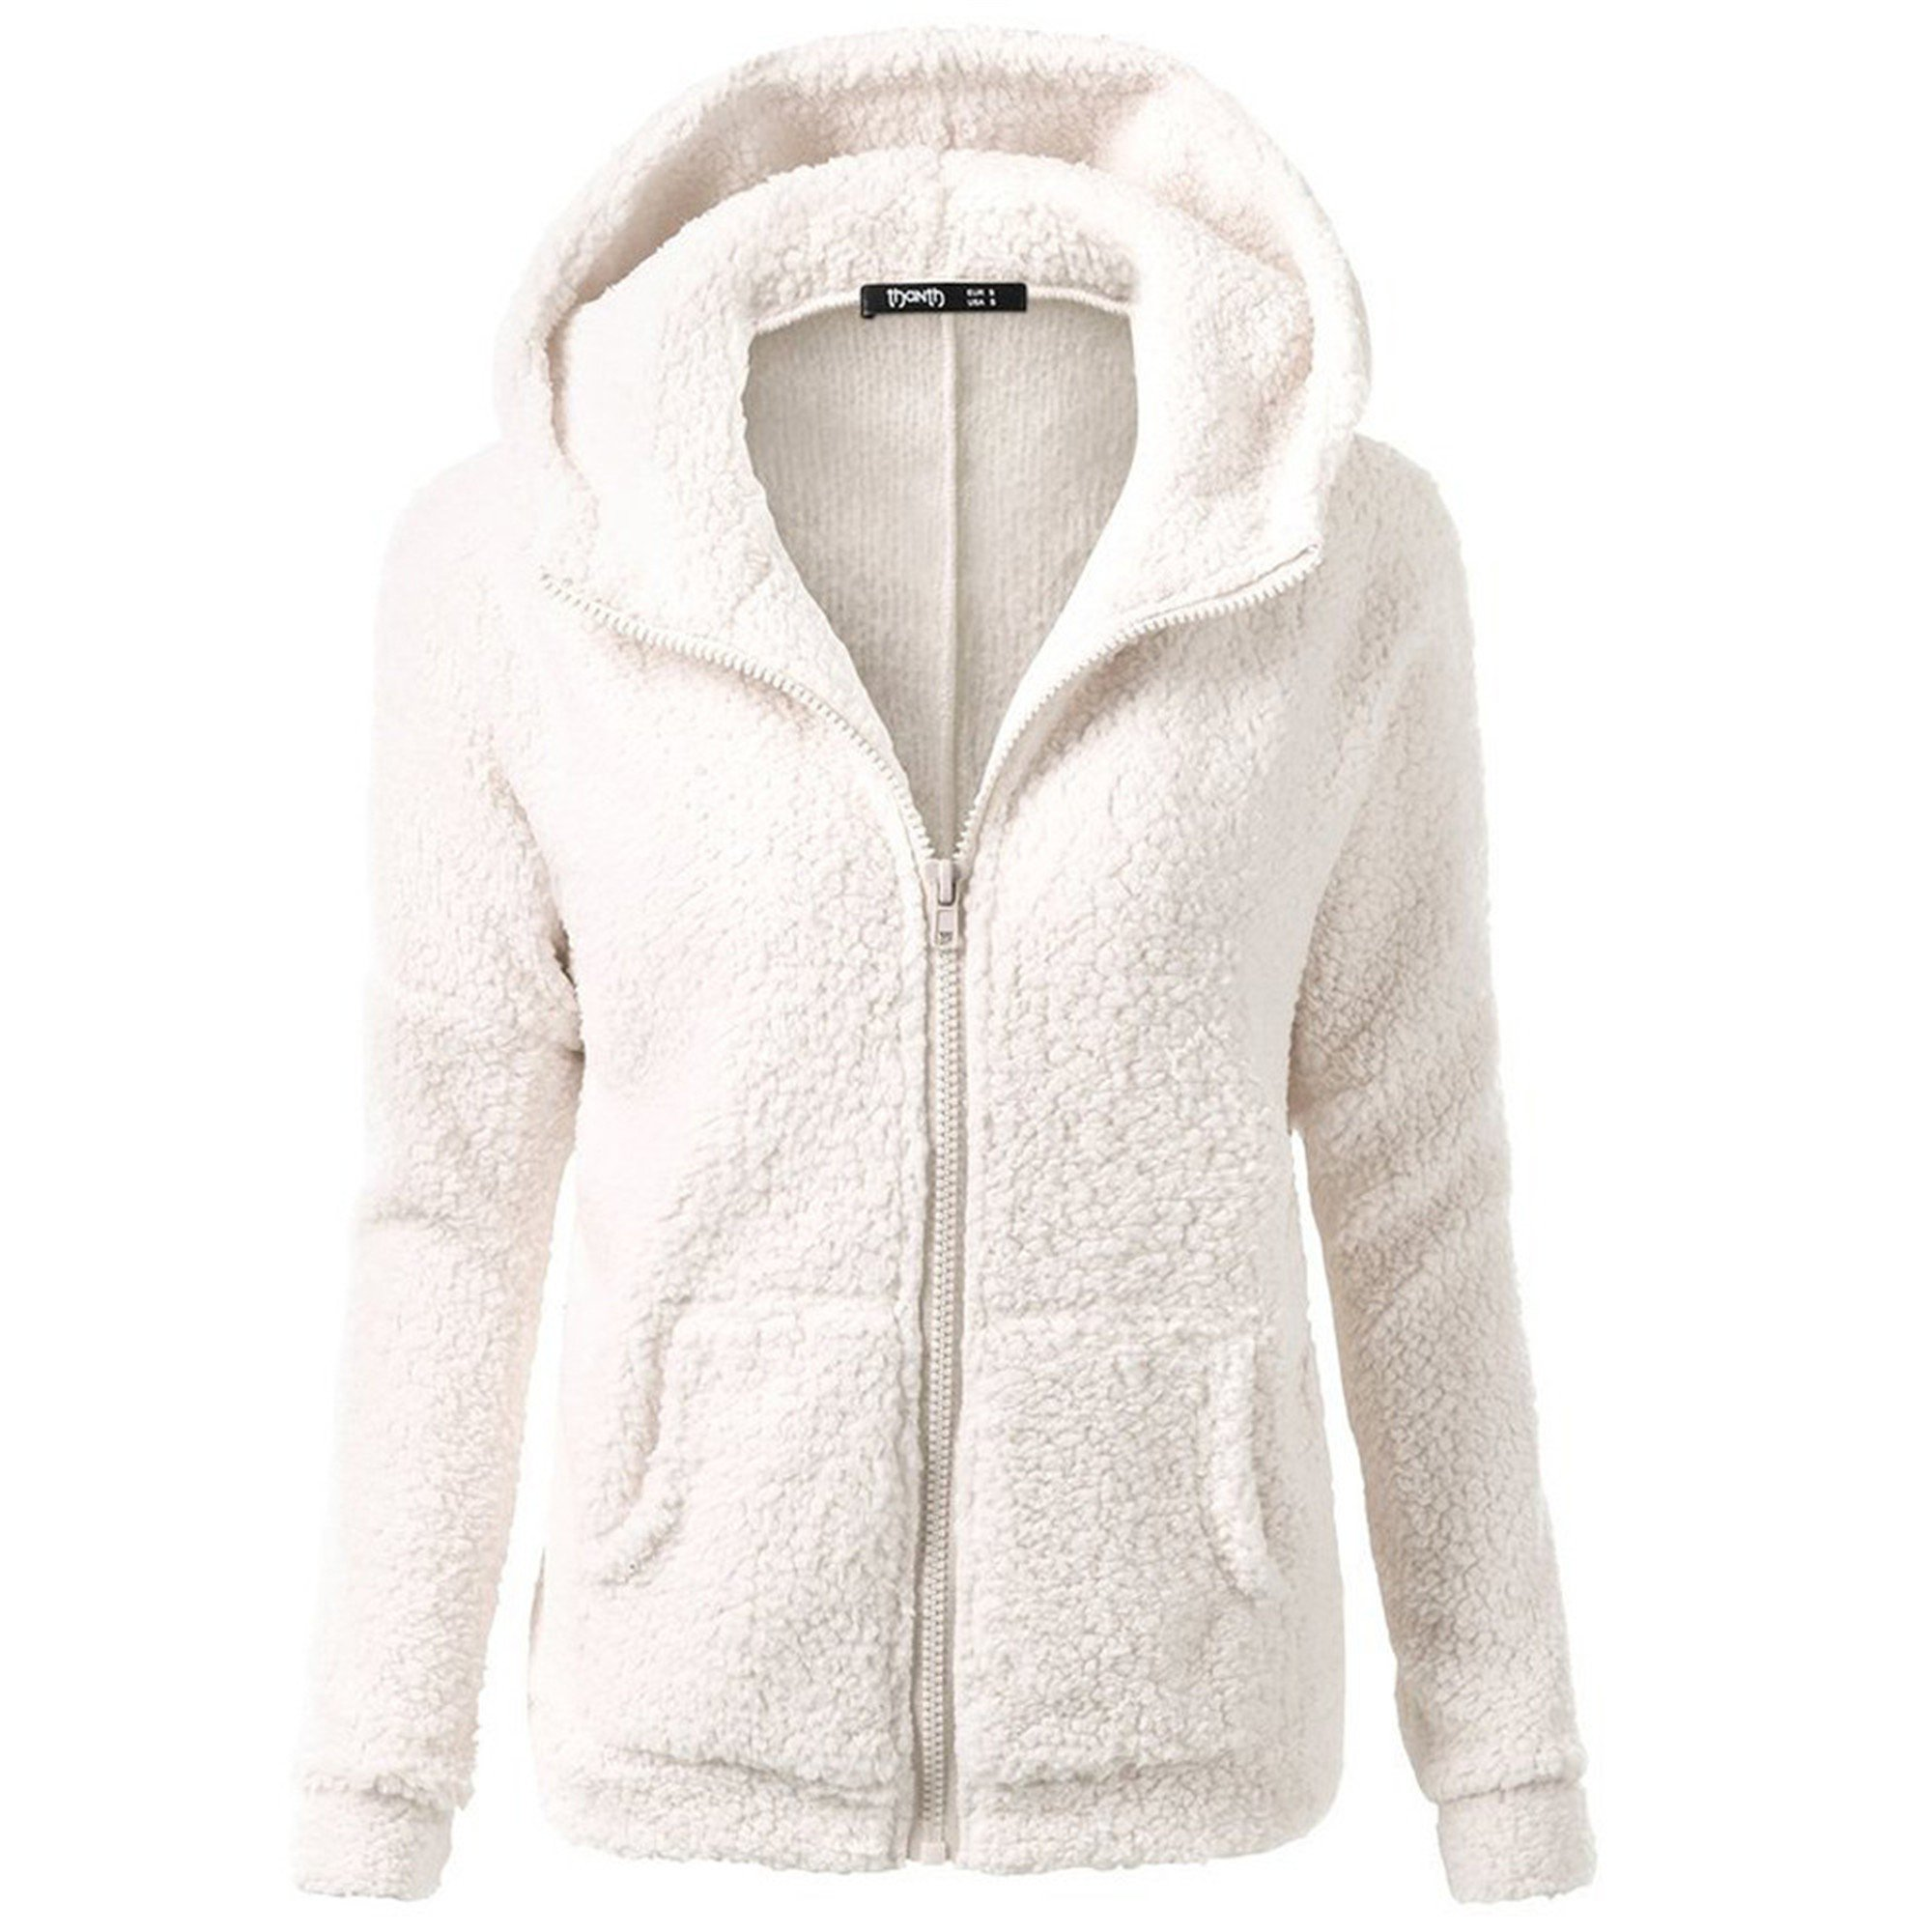 Clearance! sfe Women Winter Faux Fur Hoodie Cotton Jacket Fashion Solid Color Warm Coat Down Jacket (White, S)